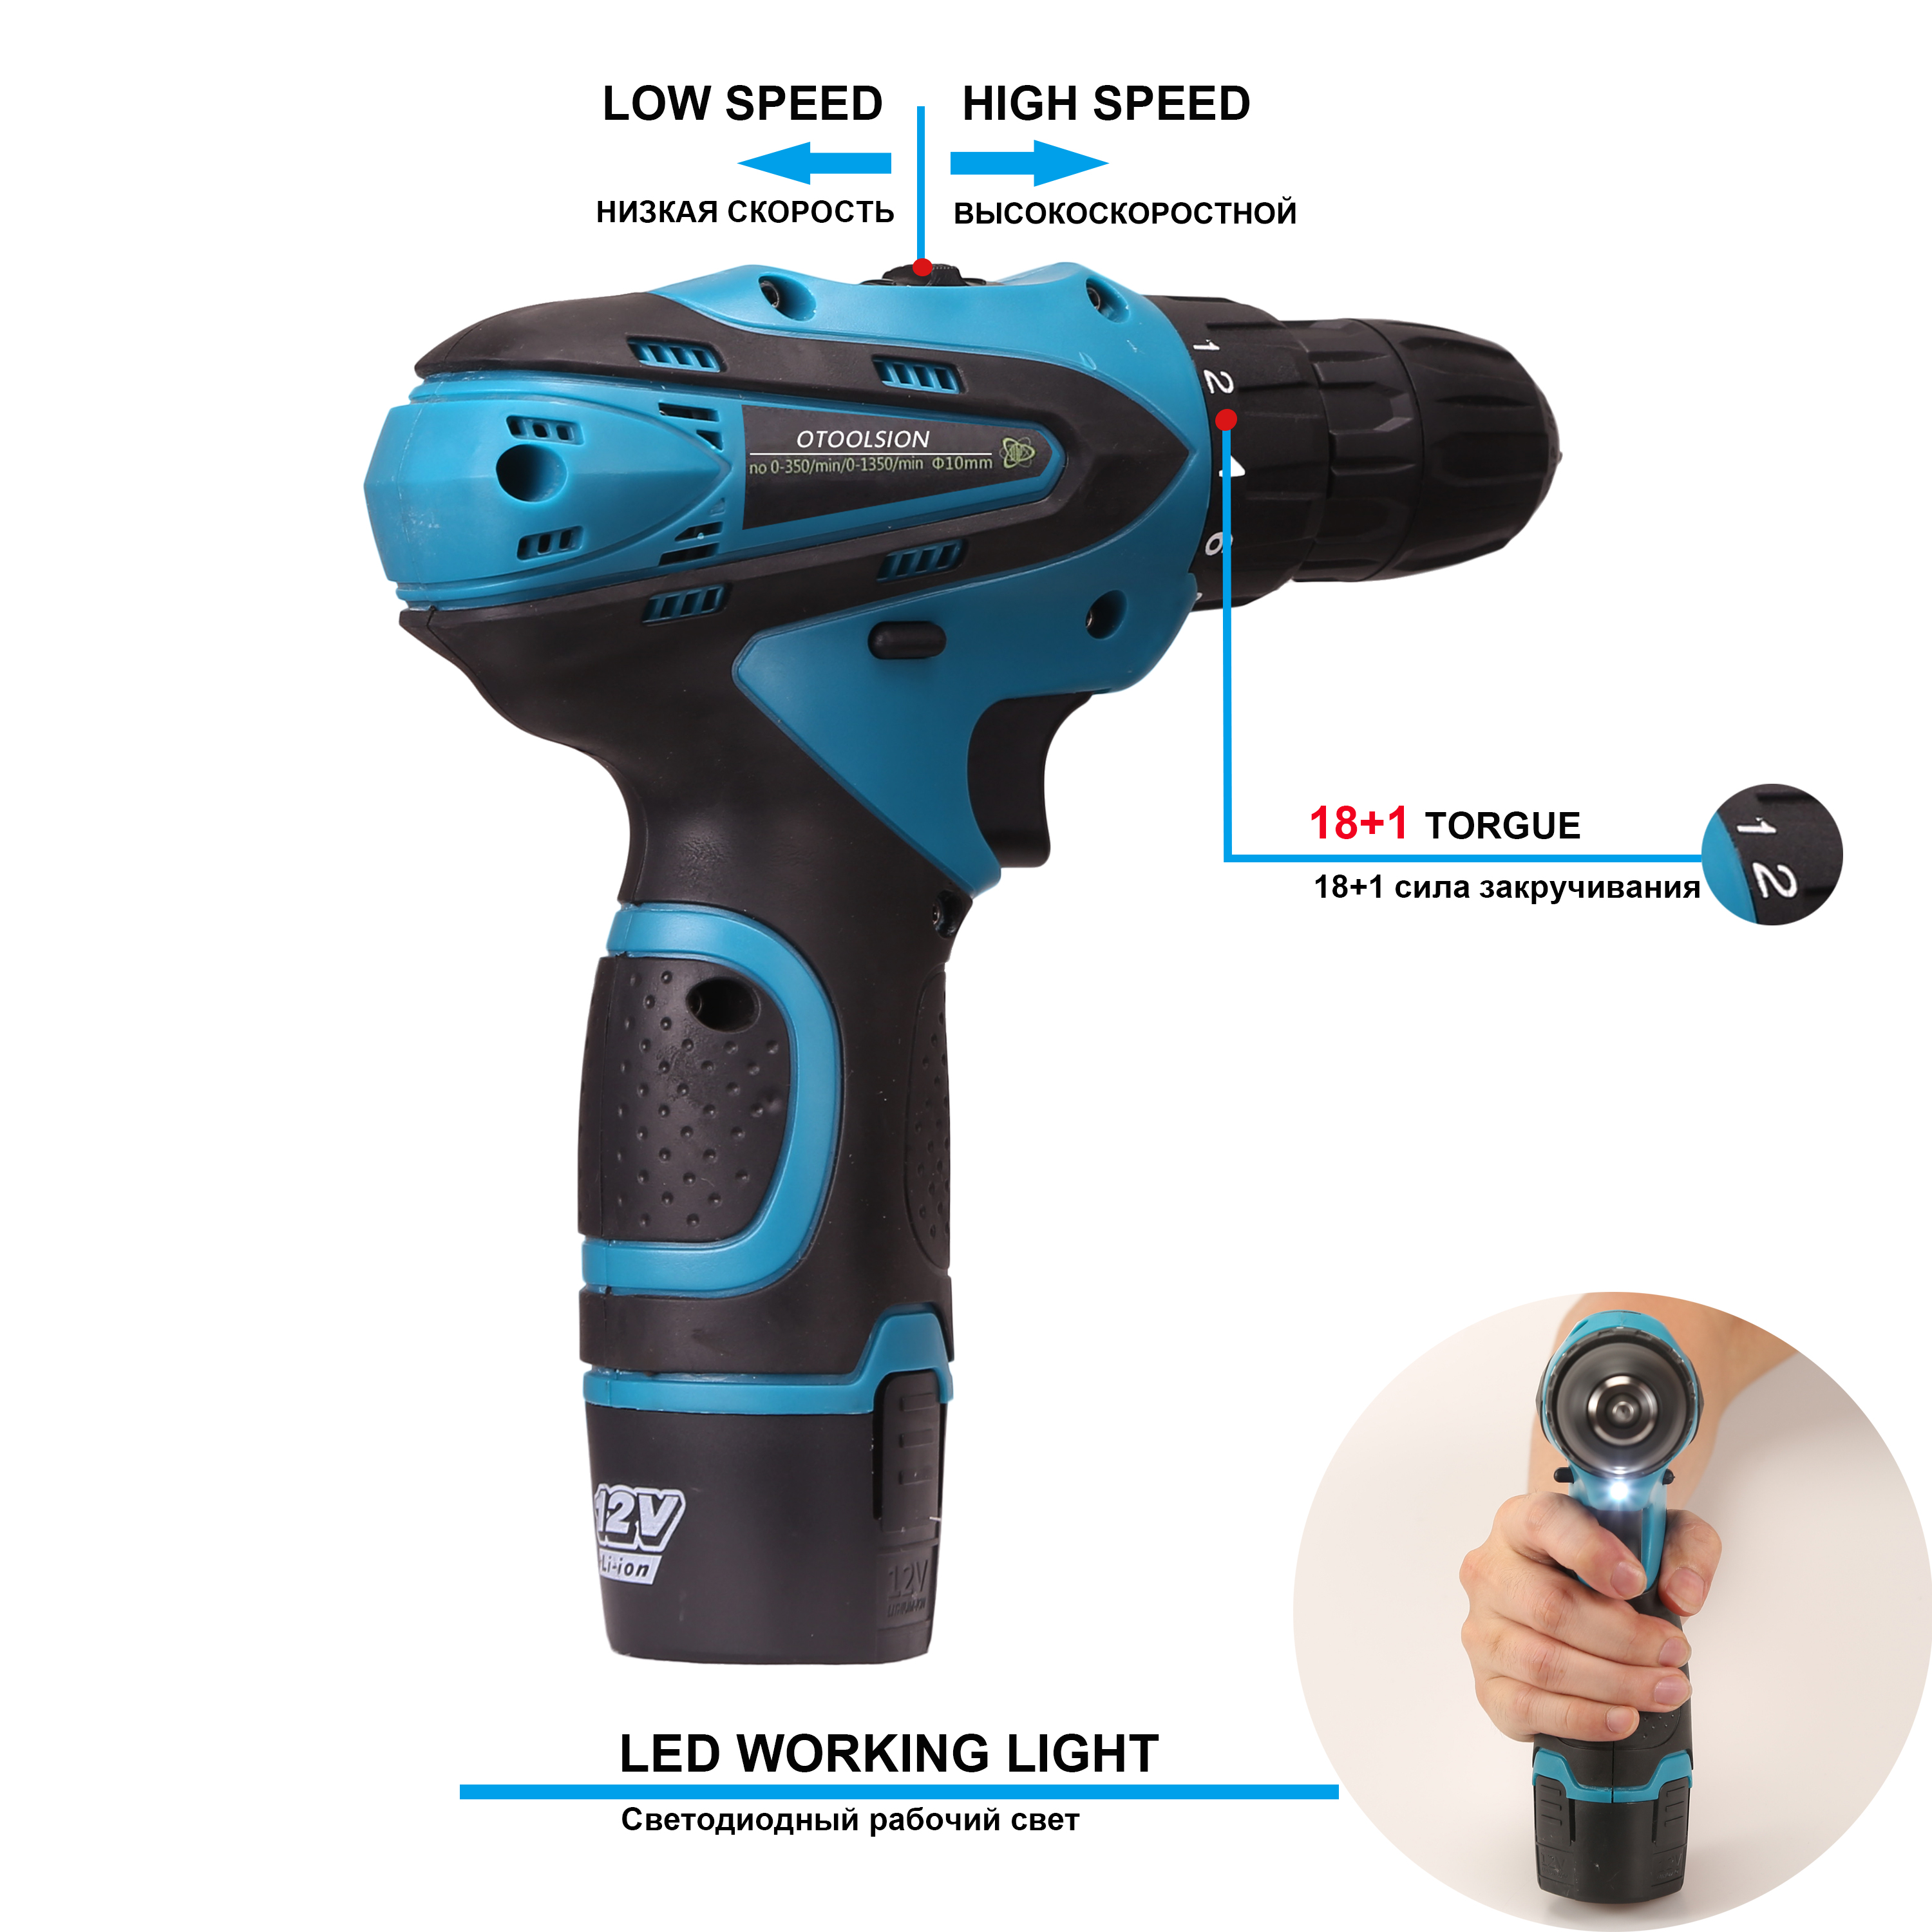 Tools : 12V Electric Tools 1 5 Ah Lithium-Ion Battery Screwdriver 18 1 Torque Cordless Drill Electric Drill For Drilling in Ceramic Wood